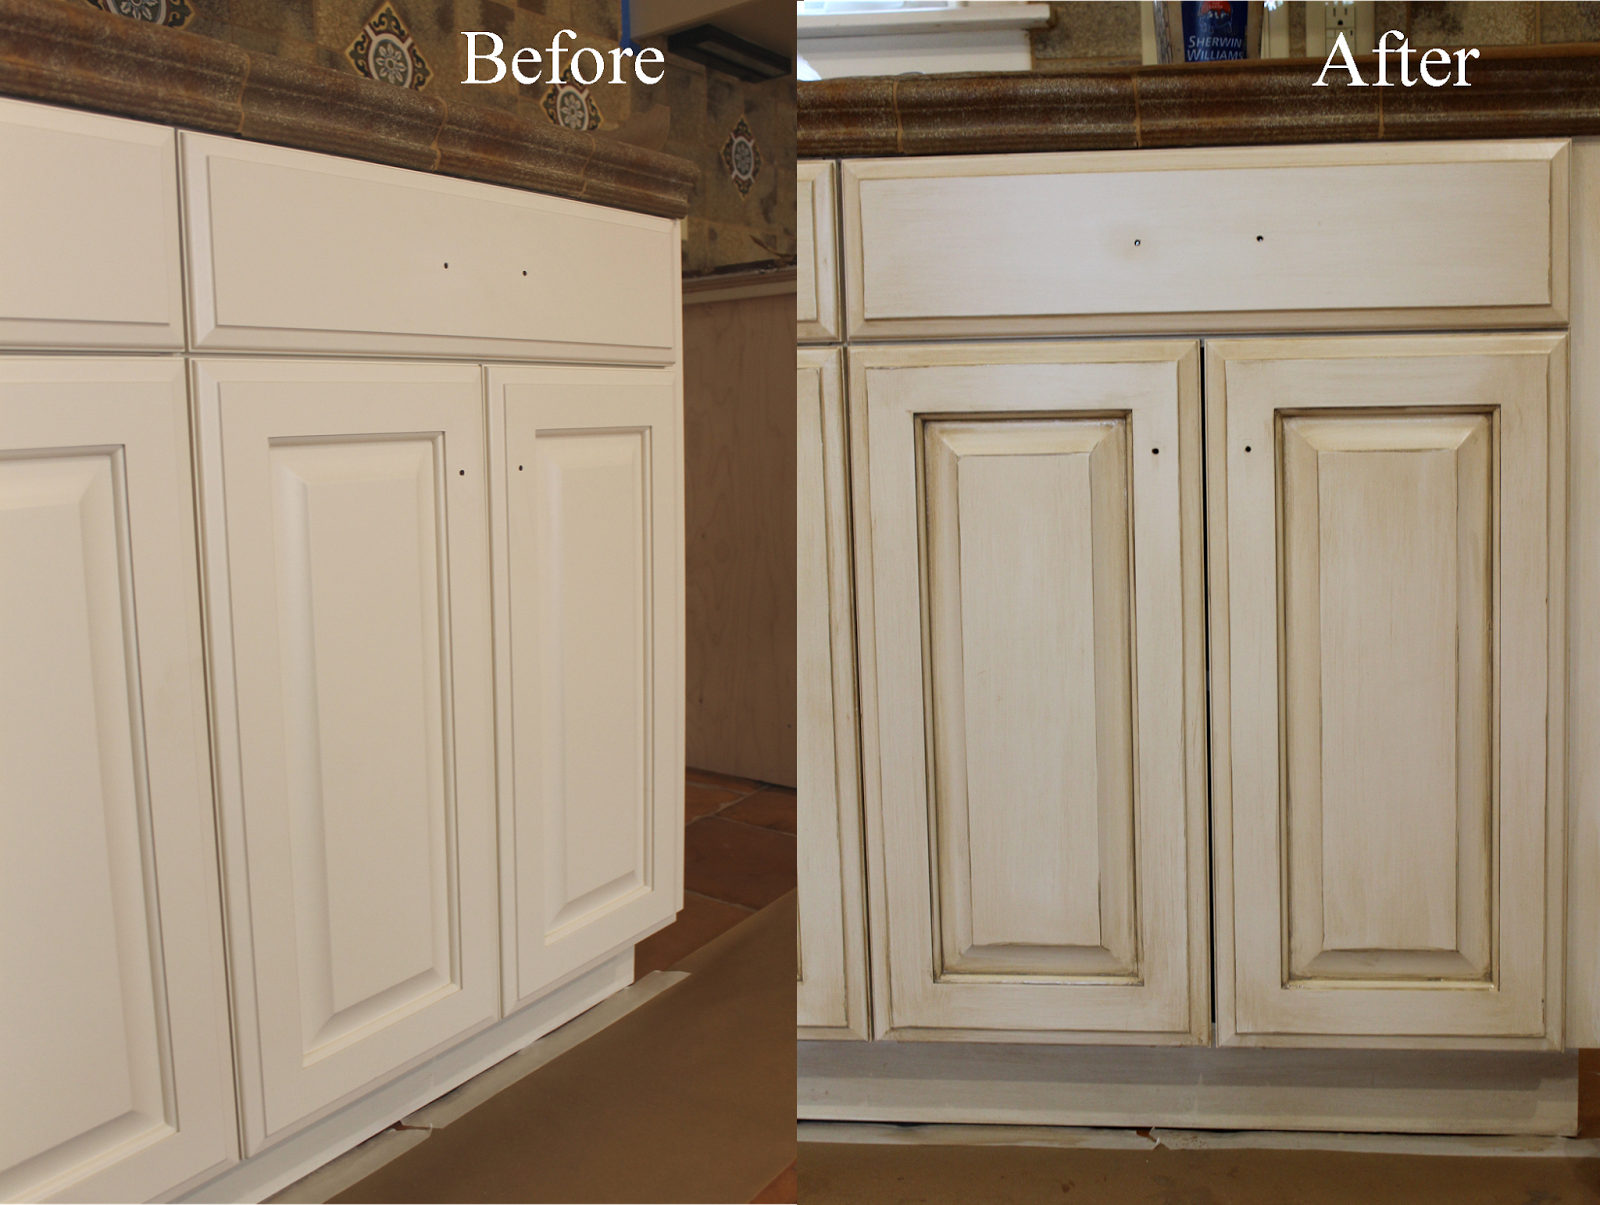 Before And After Glazing Antiquing Cabinets A Complete How To Guide From A Professional A Faux Glazed Kitchen Cabinets Glazing Cabinets Kitchen Cabinets